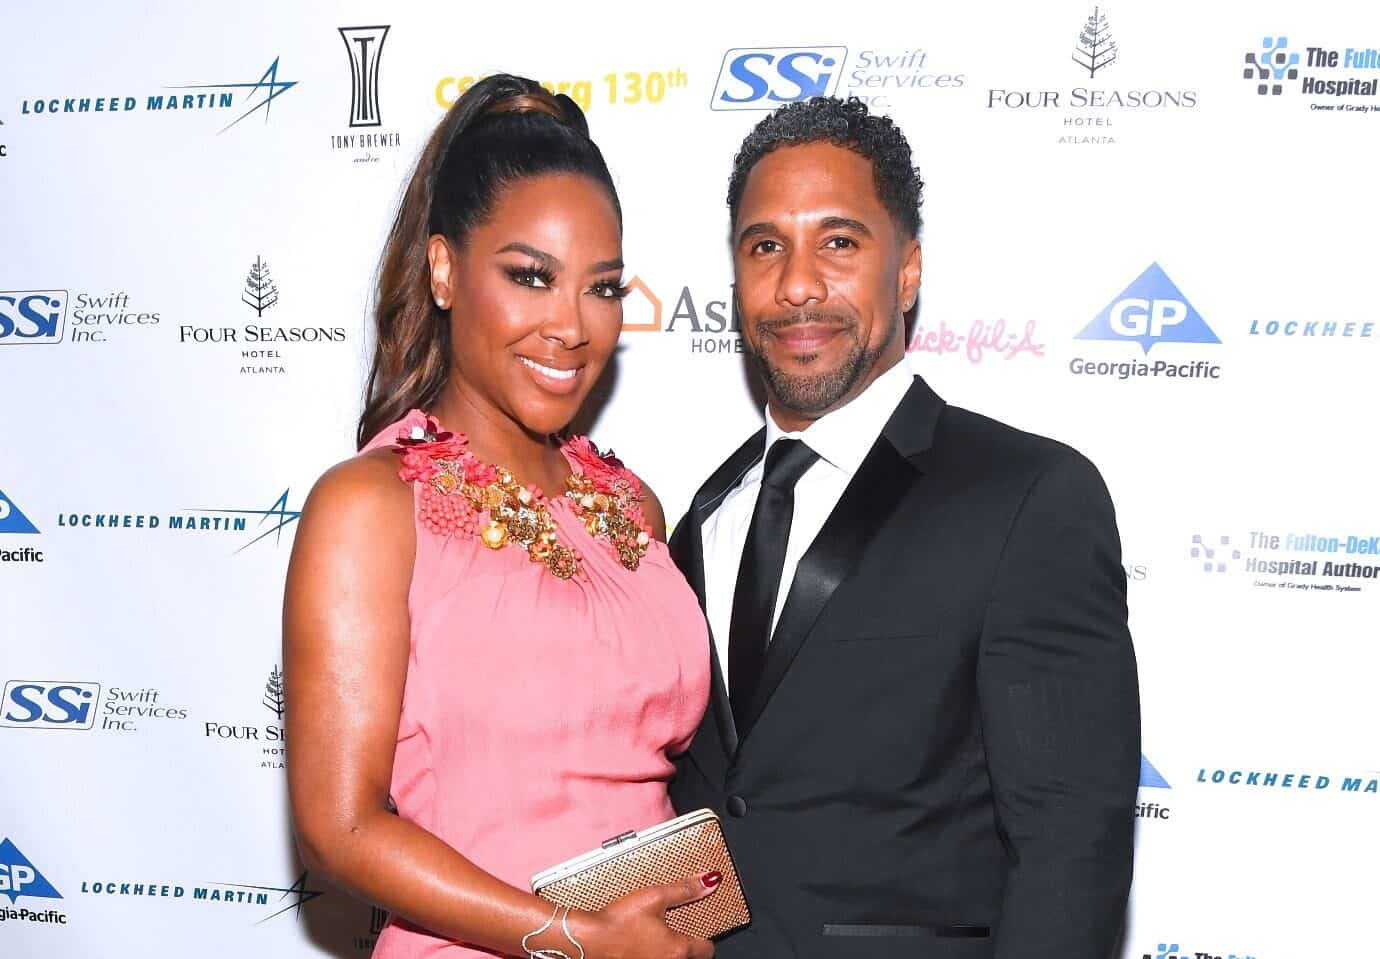 Kenya Moore Reveals Estranged Husband Marc Daly's Reaction to Watching Himself on RHOA and if They're Reconciling, Plus She Opens Up About Estranged Mom Reaching Out and Reacts to Rumors of Nene Quitting